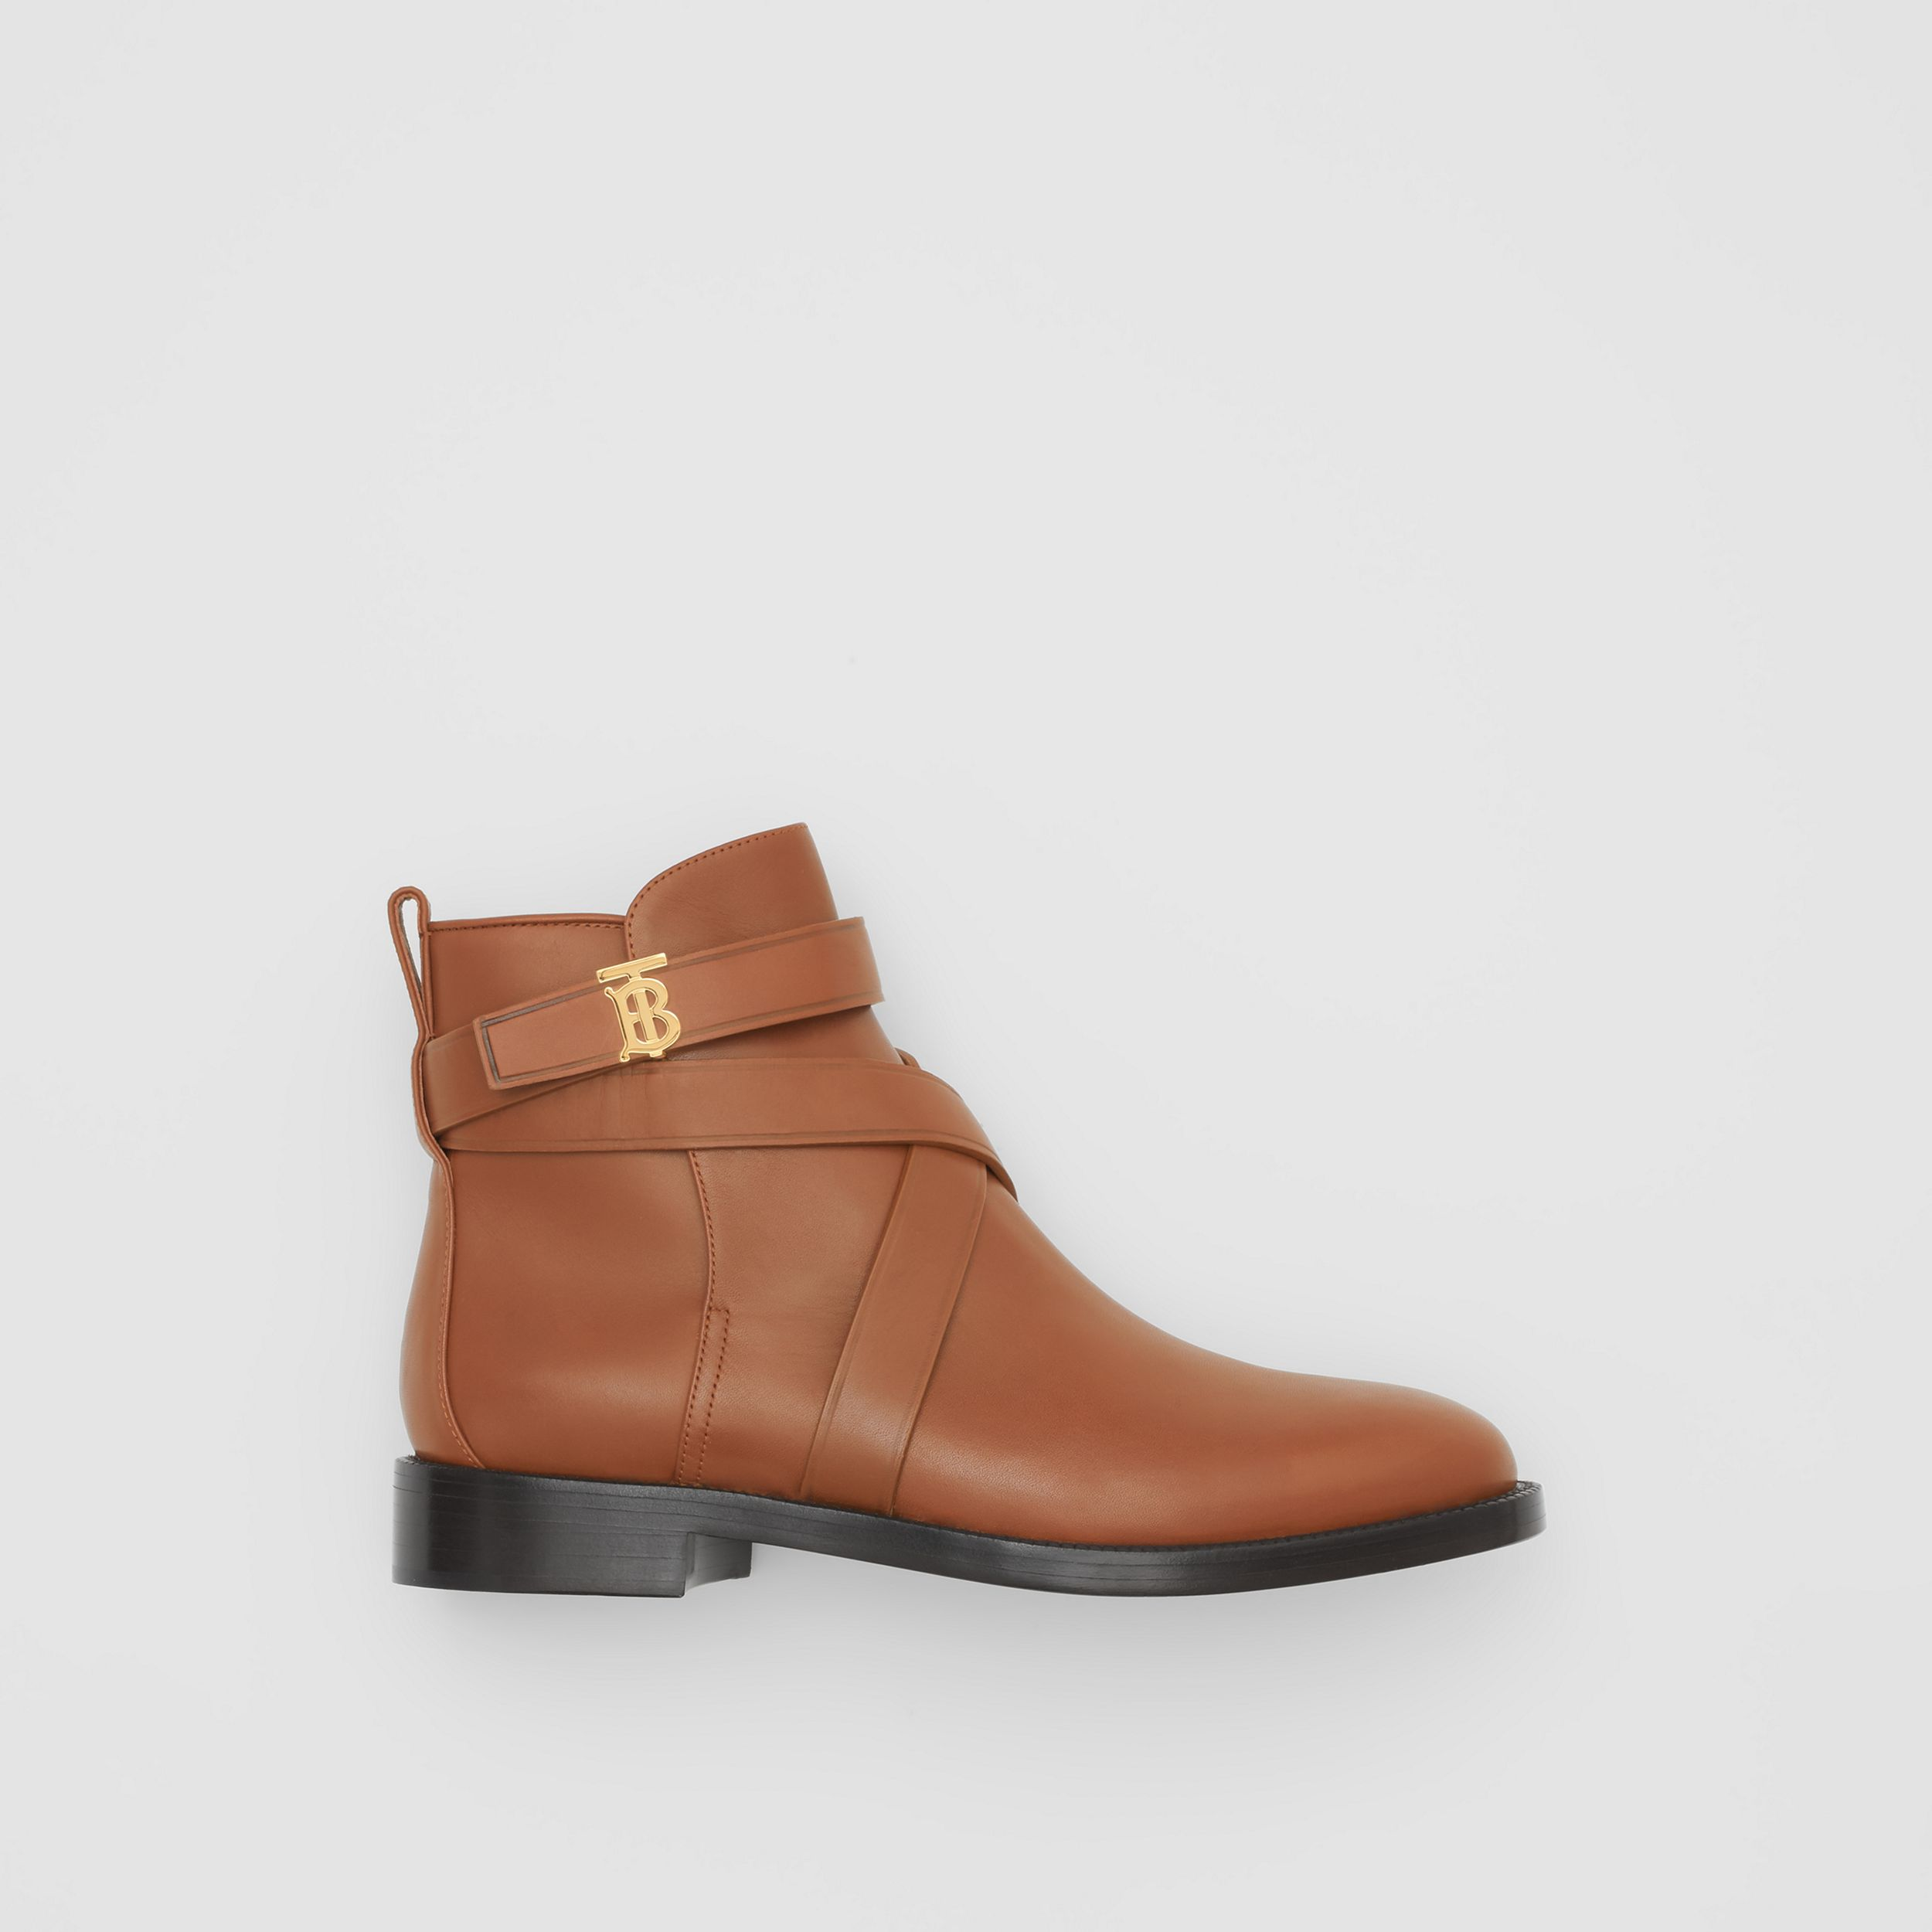 Monogram Motif Leather Ankle Boots in Tan - Women | Burberry - 1